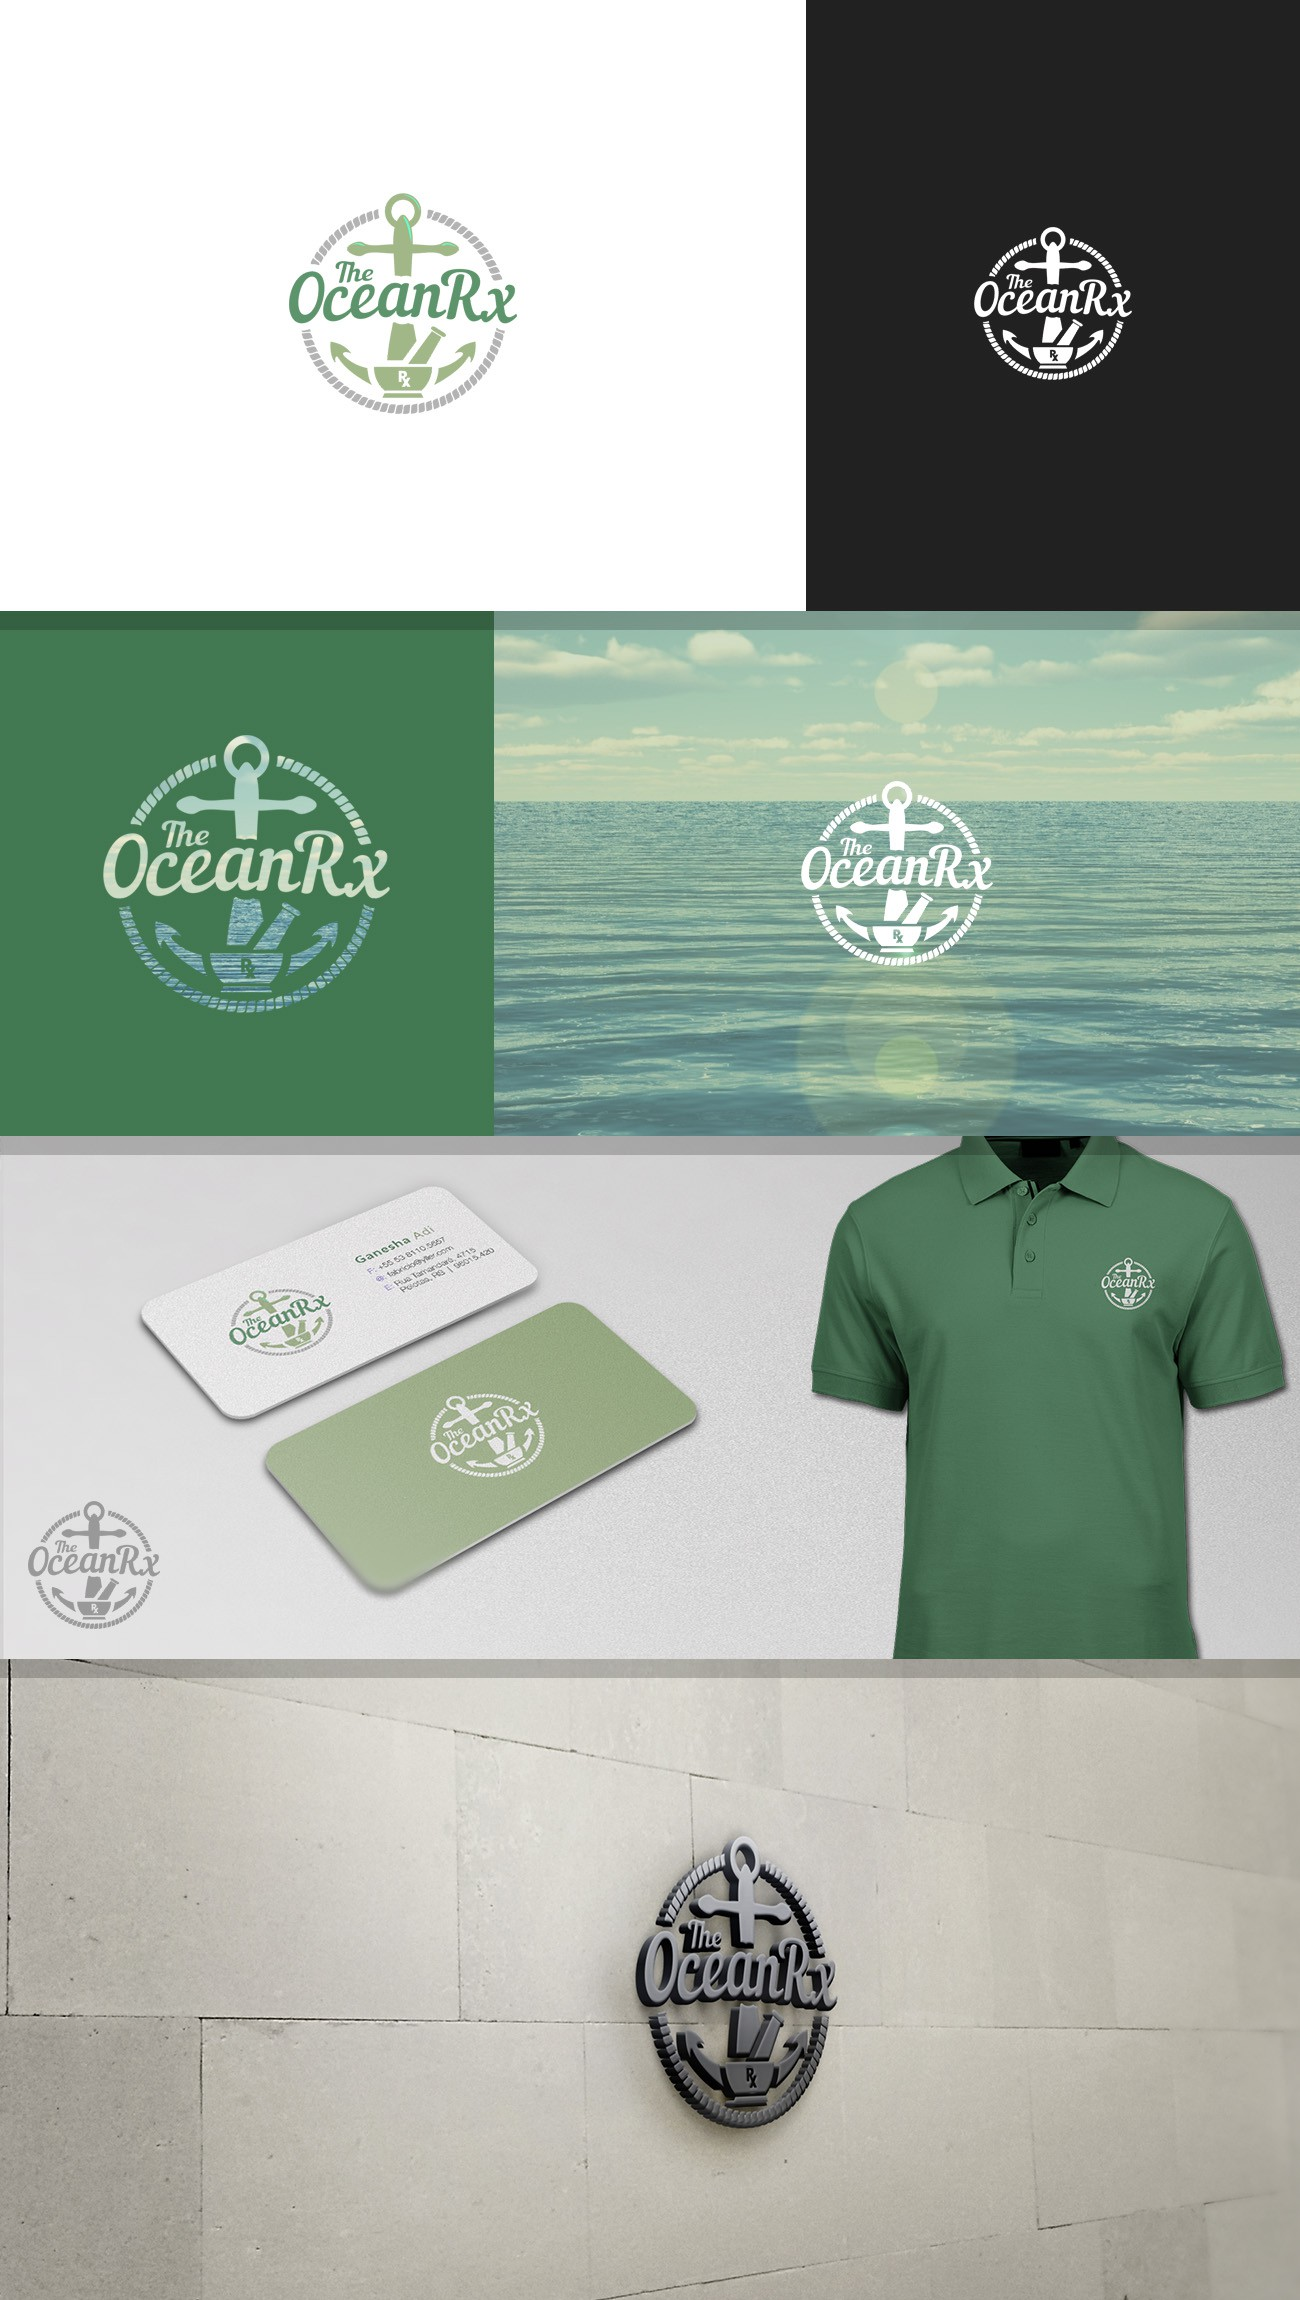 Need a Unique Fitness, Health & Wellness OCEAN inspired logo